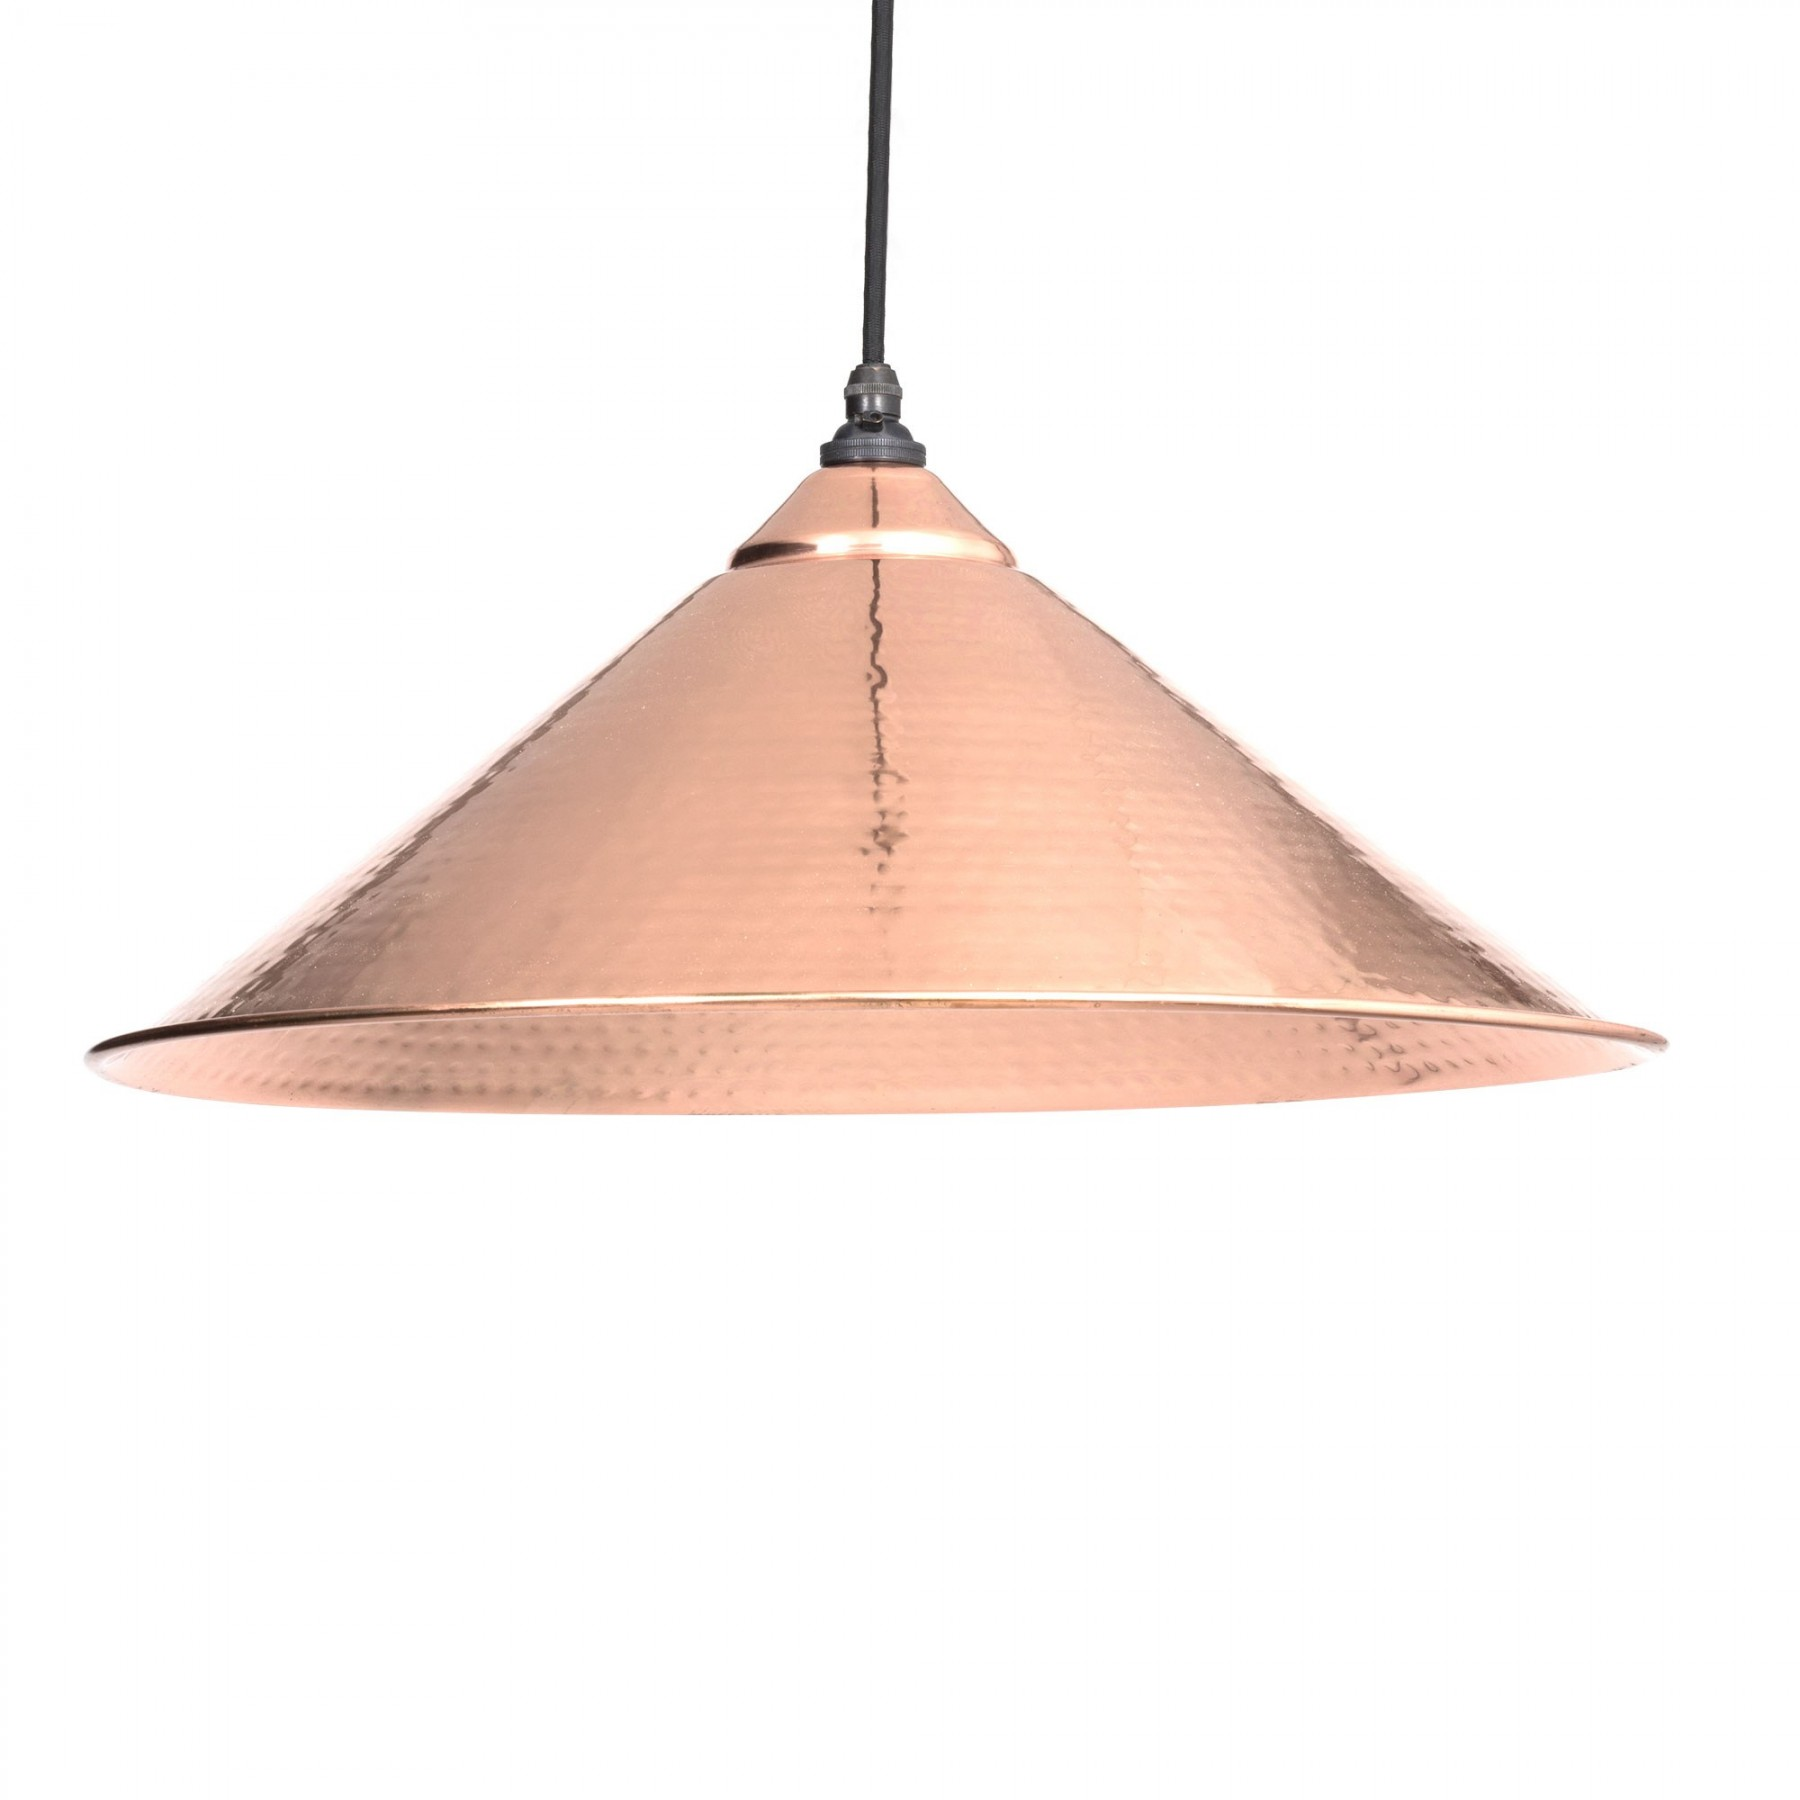 Yardley Pendant Hammered Copper 460mm Dia, 210mm Height Hammered Copper